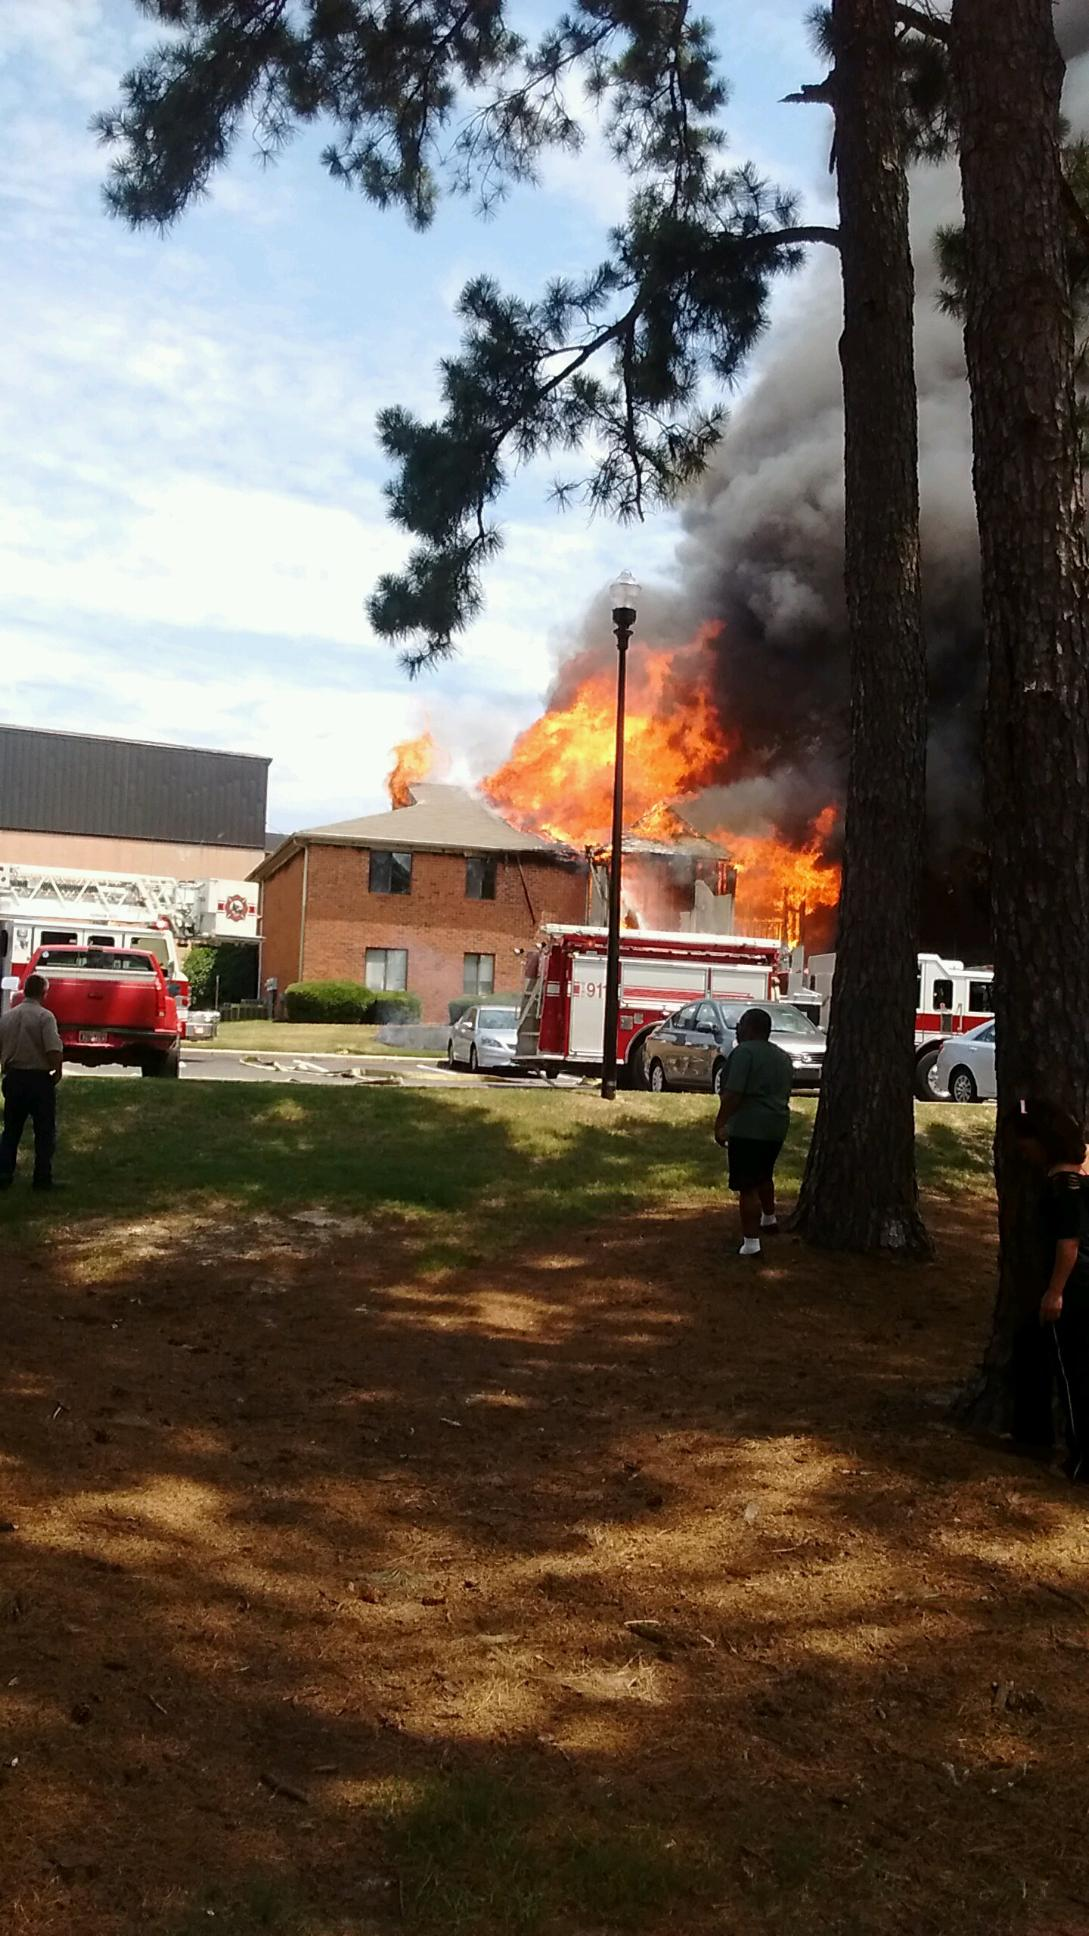 A four-unit apartment building at Wylds Woods Apartments off Wrightsboro Rd. went up in flames.